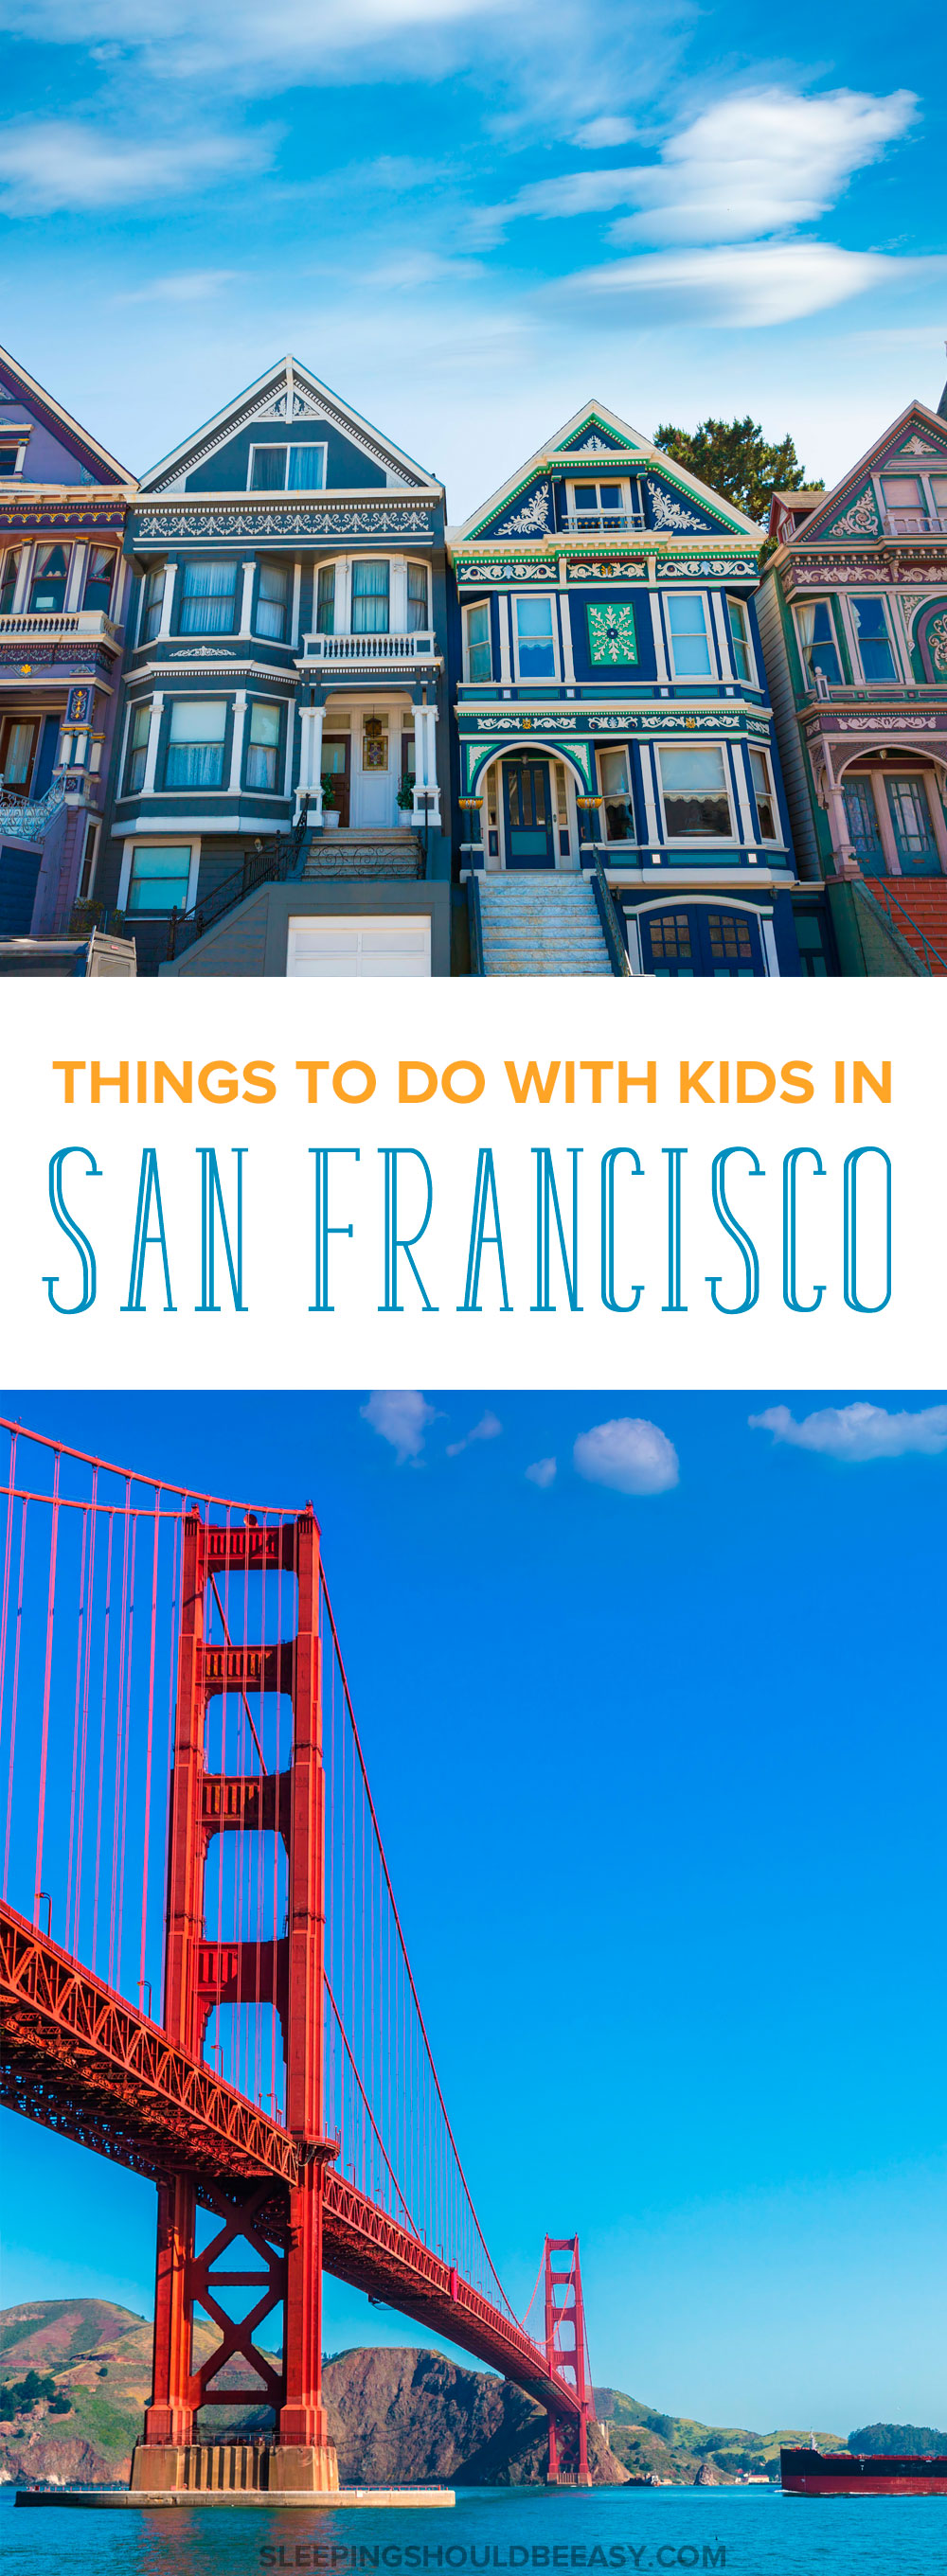 Things to do with kids in San Francisco: The Golden Gate Bridge and typical San Francisco homes